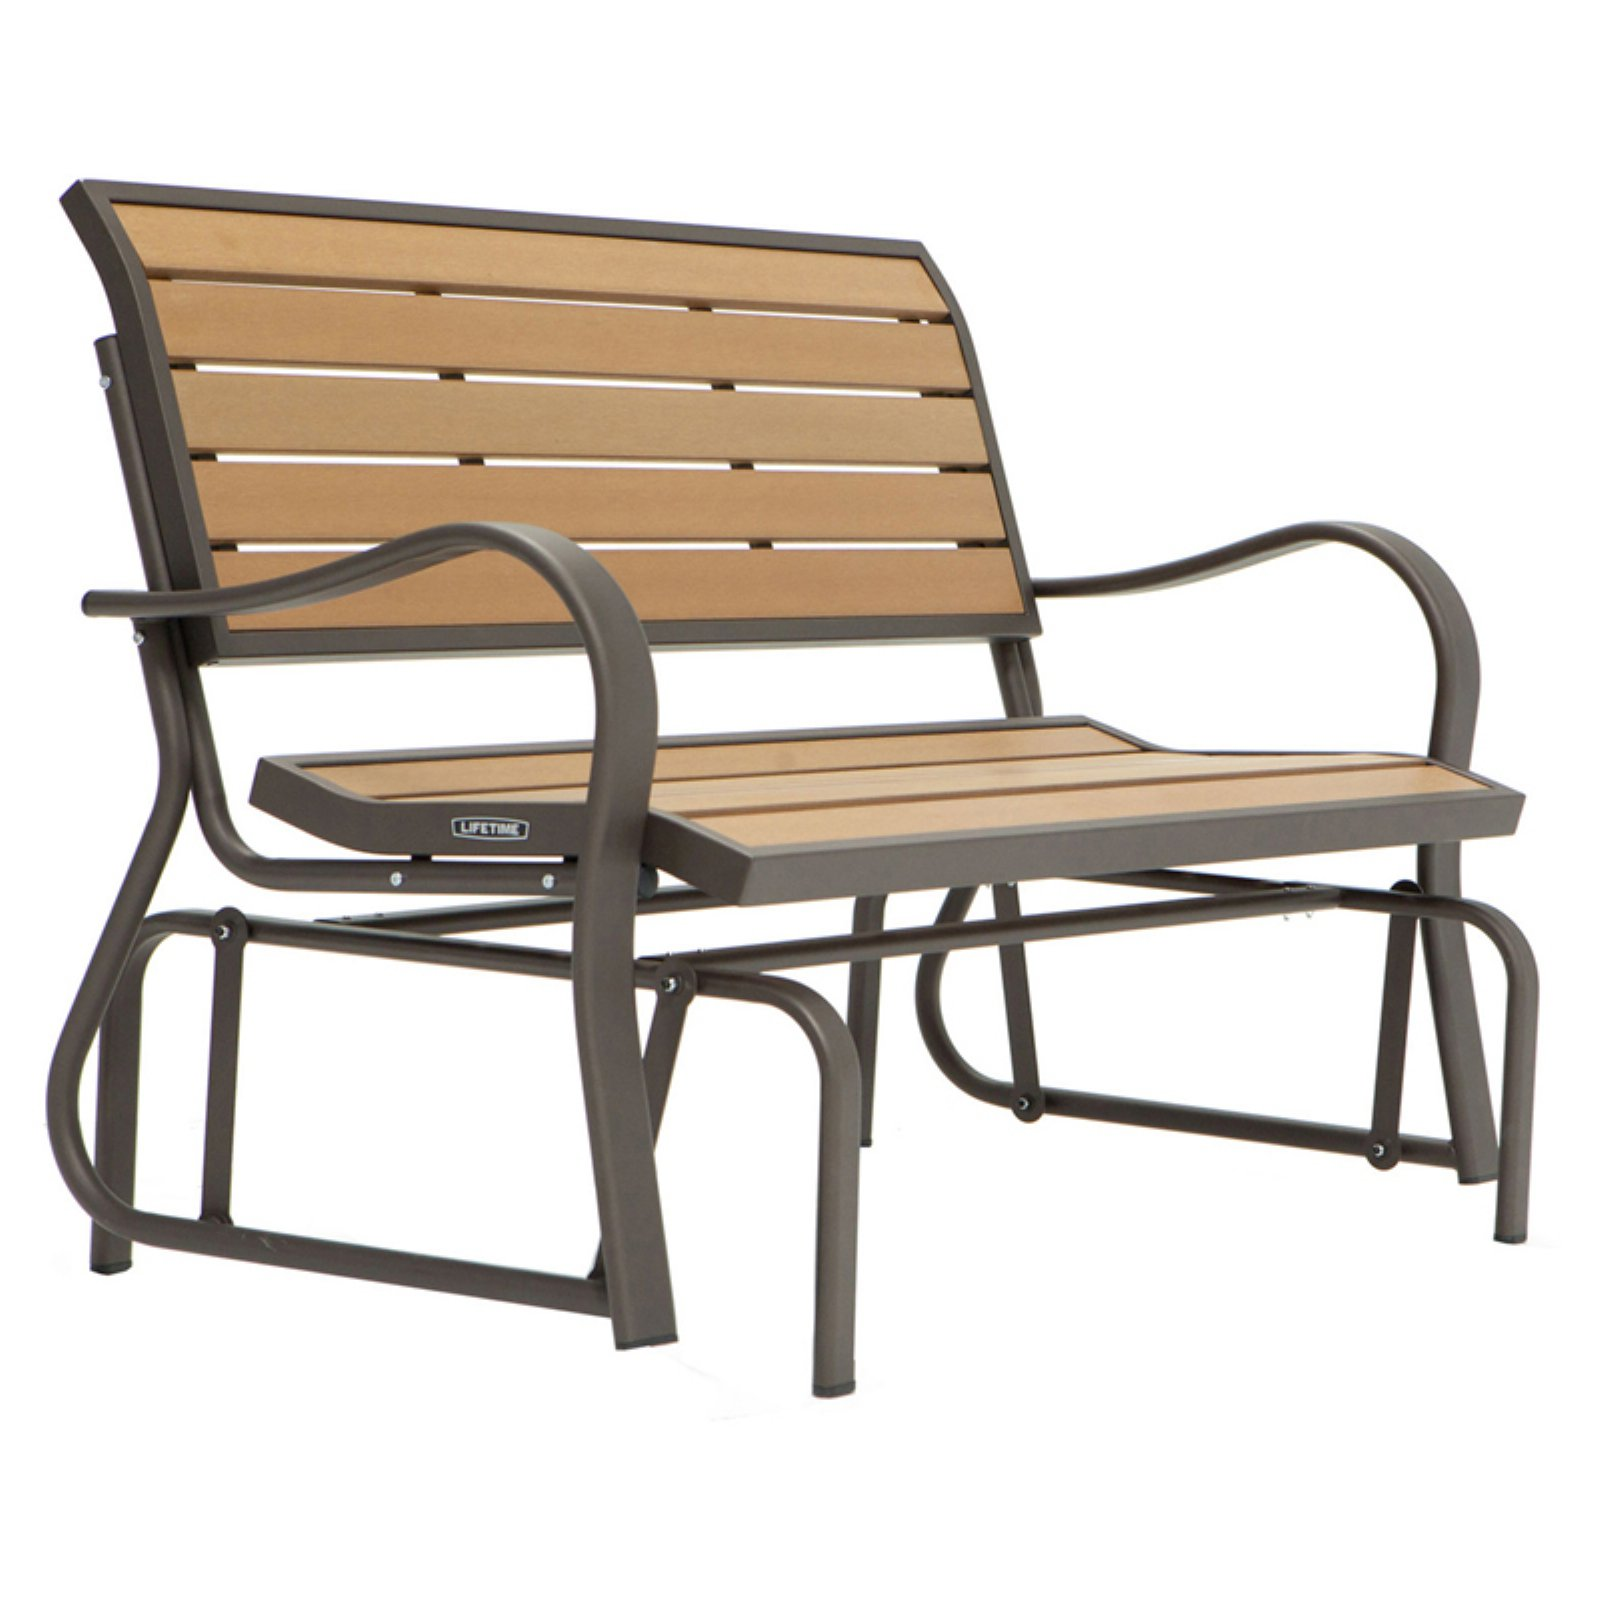 Lifetime Wood Alternative Glider Bench, 60055 by Outdoor Benches